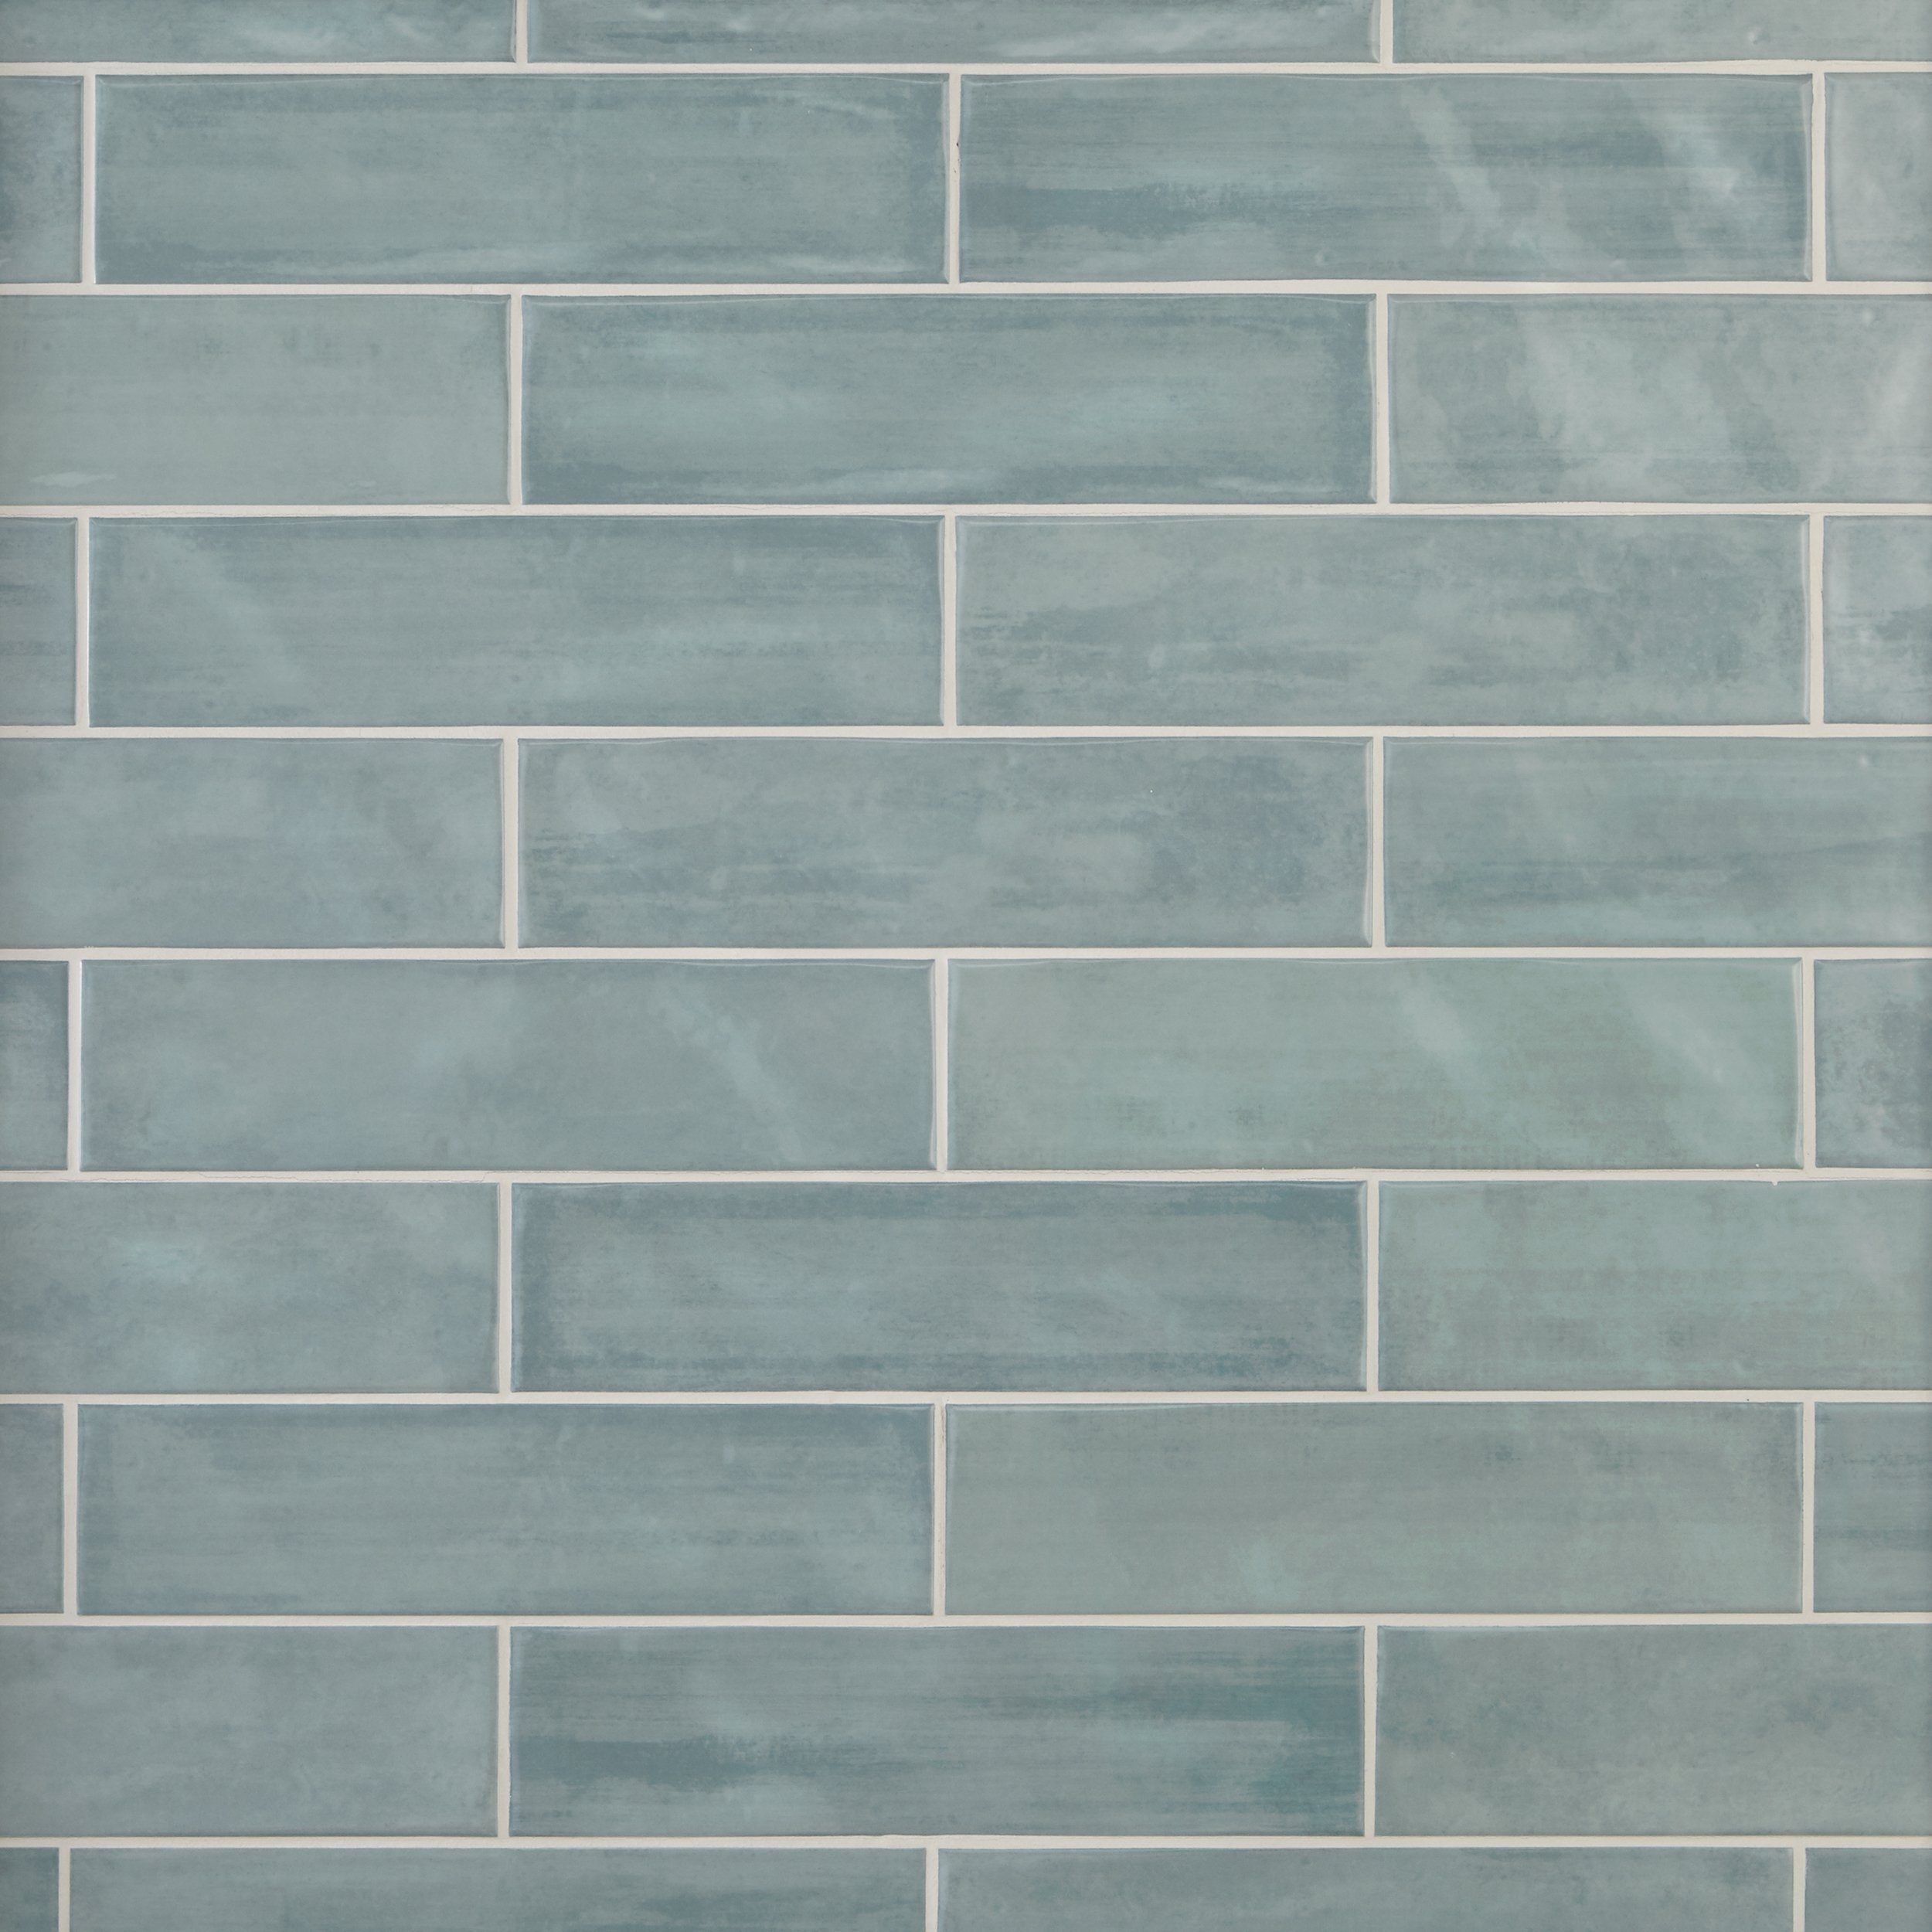 Denim Ceramic Tile - 3 x 12 - 100253459 | Floor and Decor